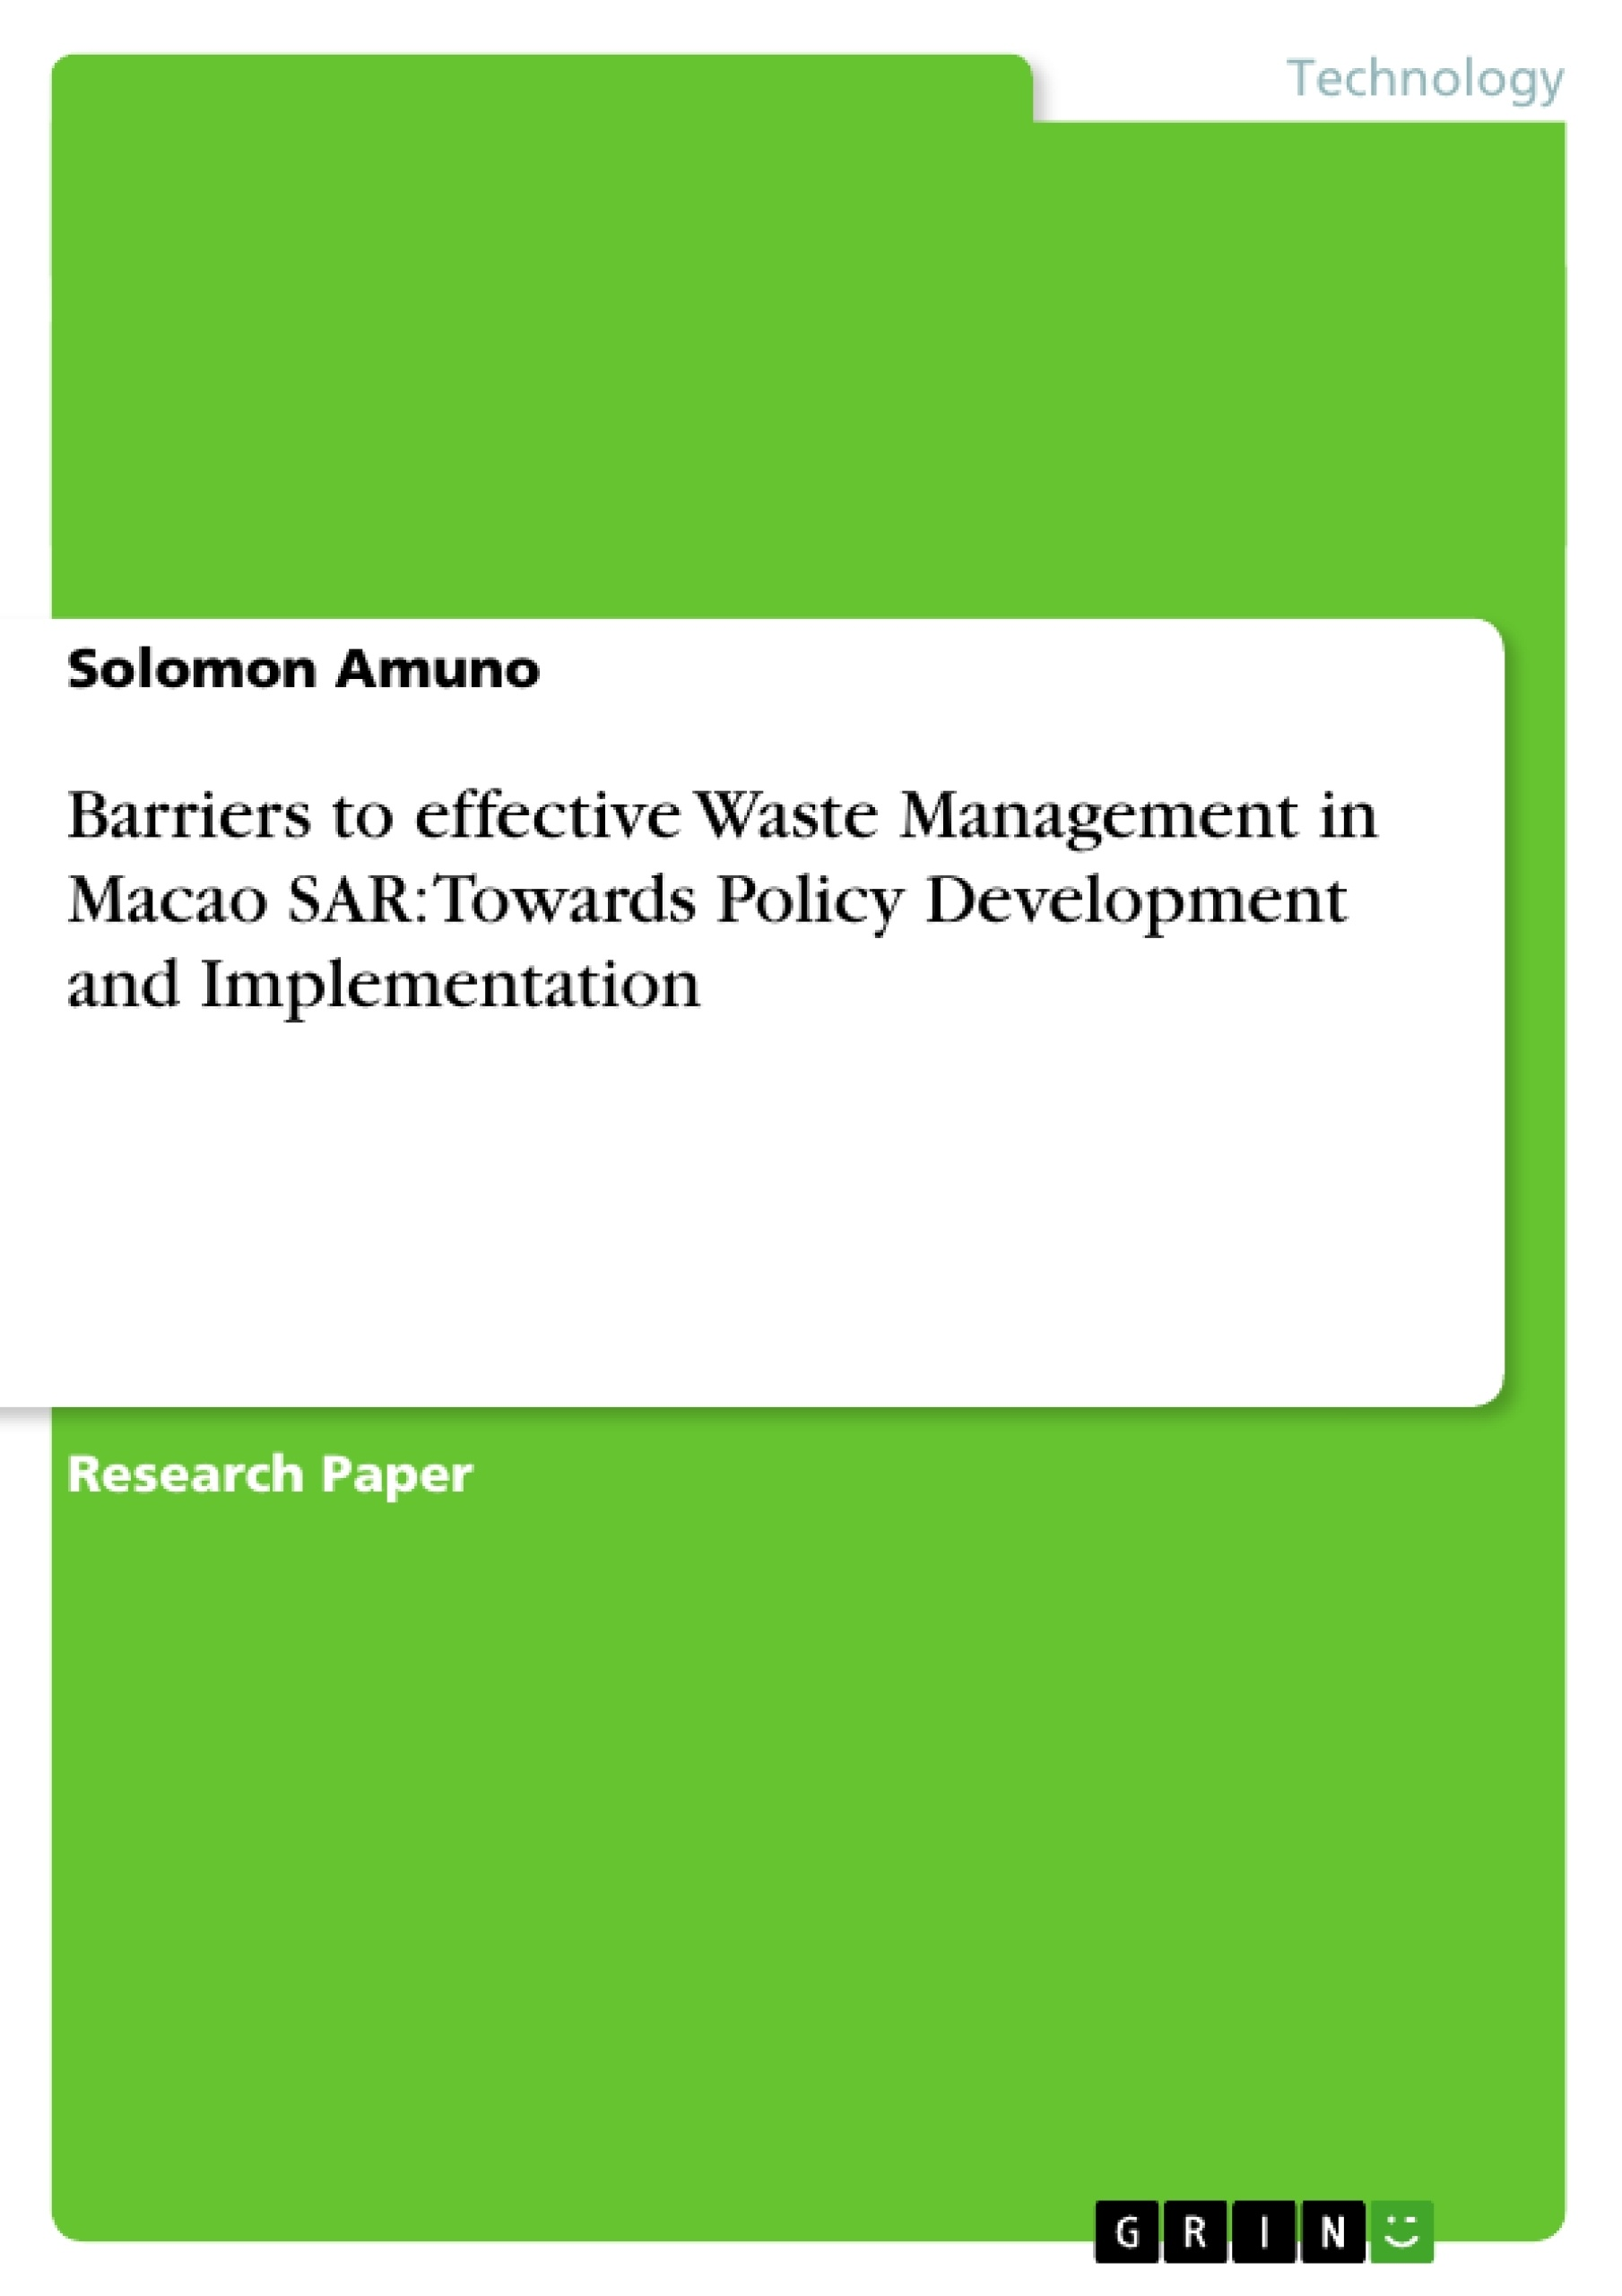 Title: Barriers to effective Waste Management in Macao SAR: Towards Policy Development and Implementation